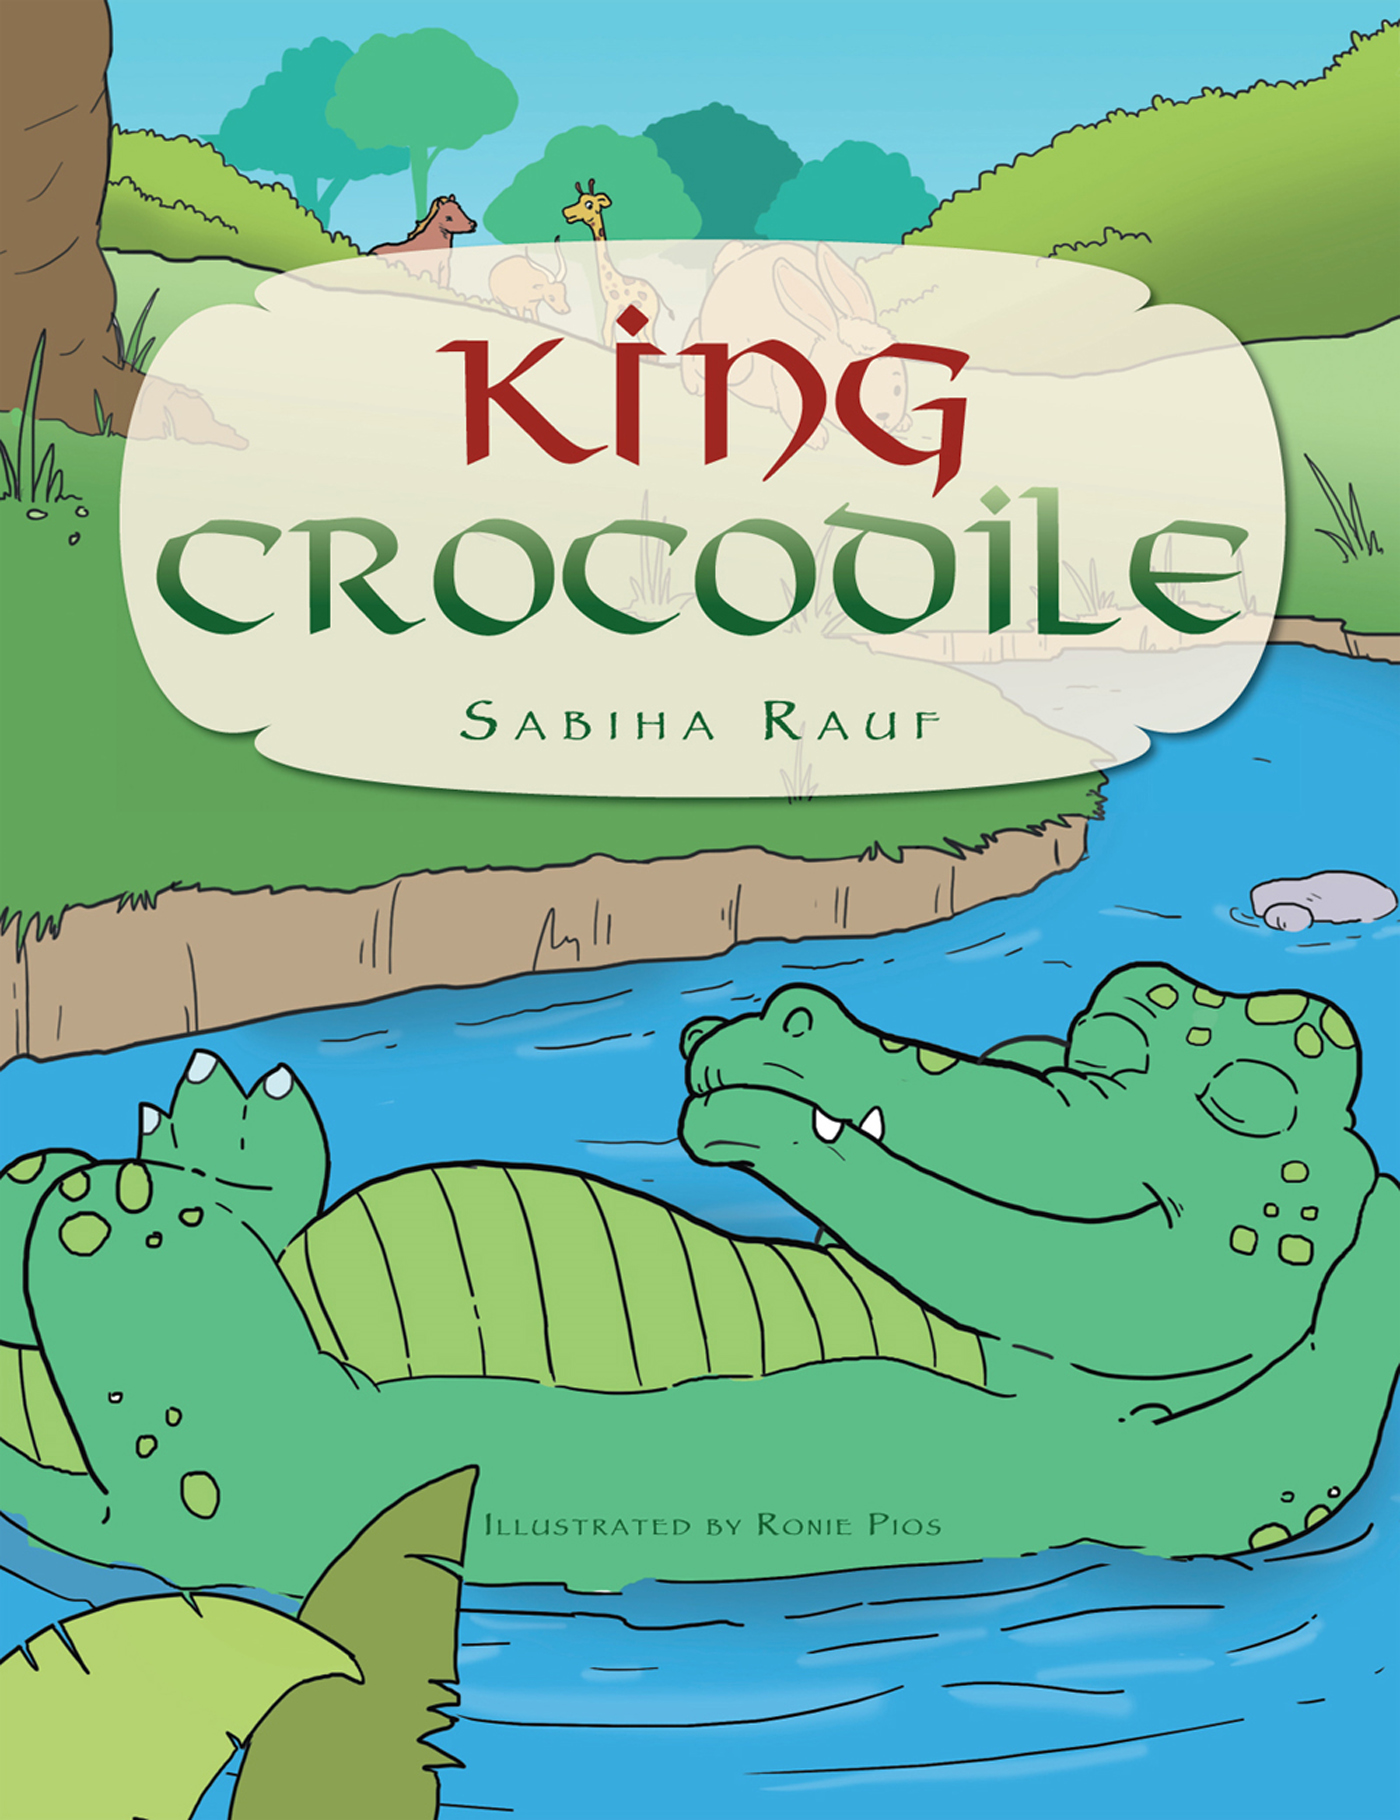 King Crocodile